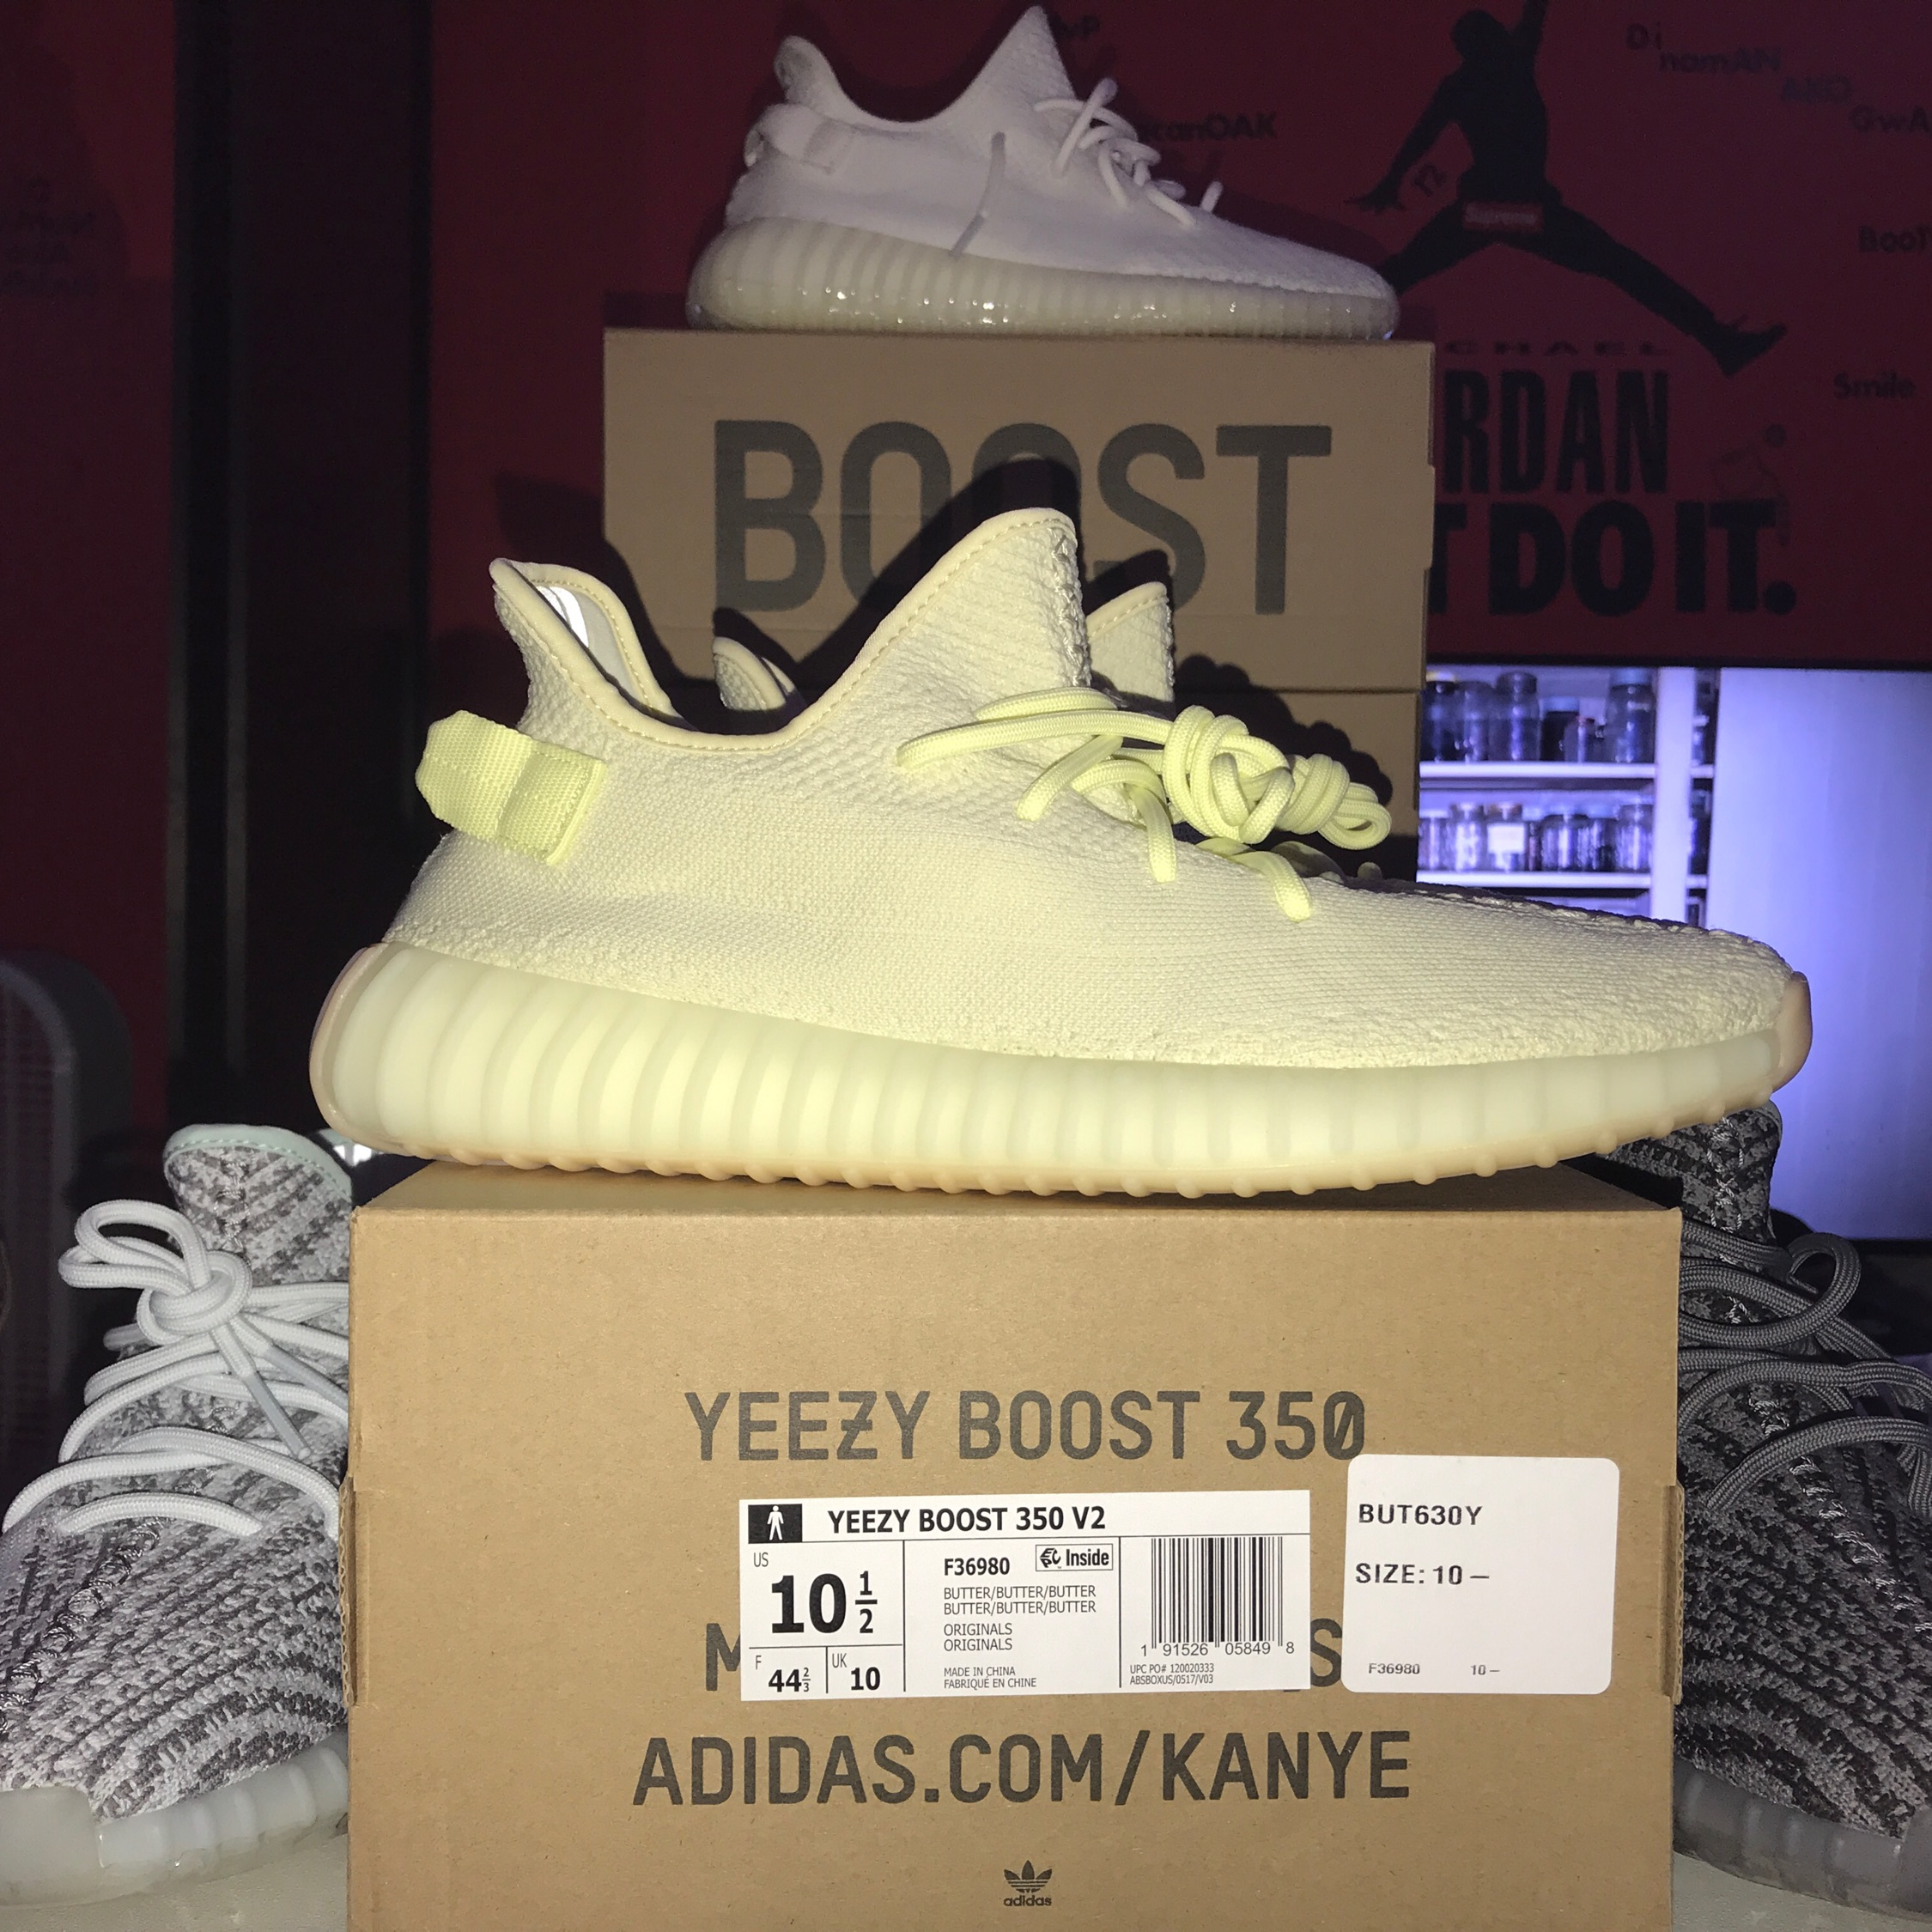 Yeezy Boost 350 V2 Cream White/Butter Bundle